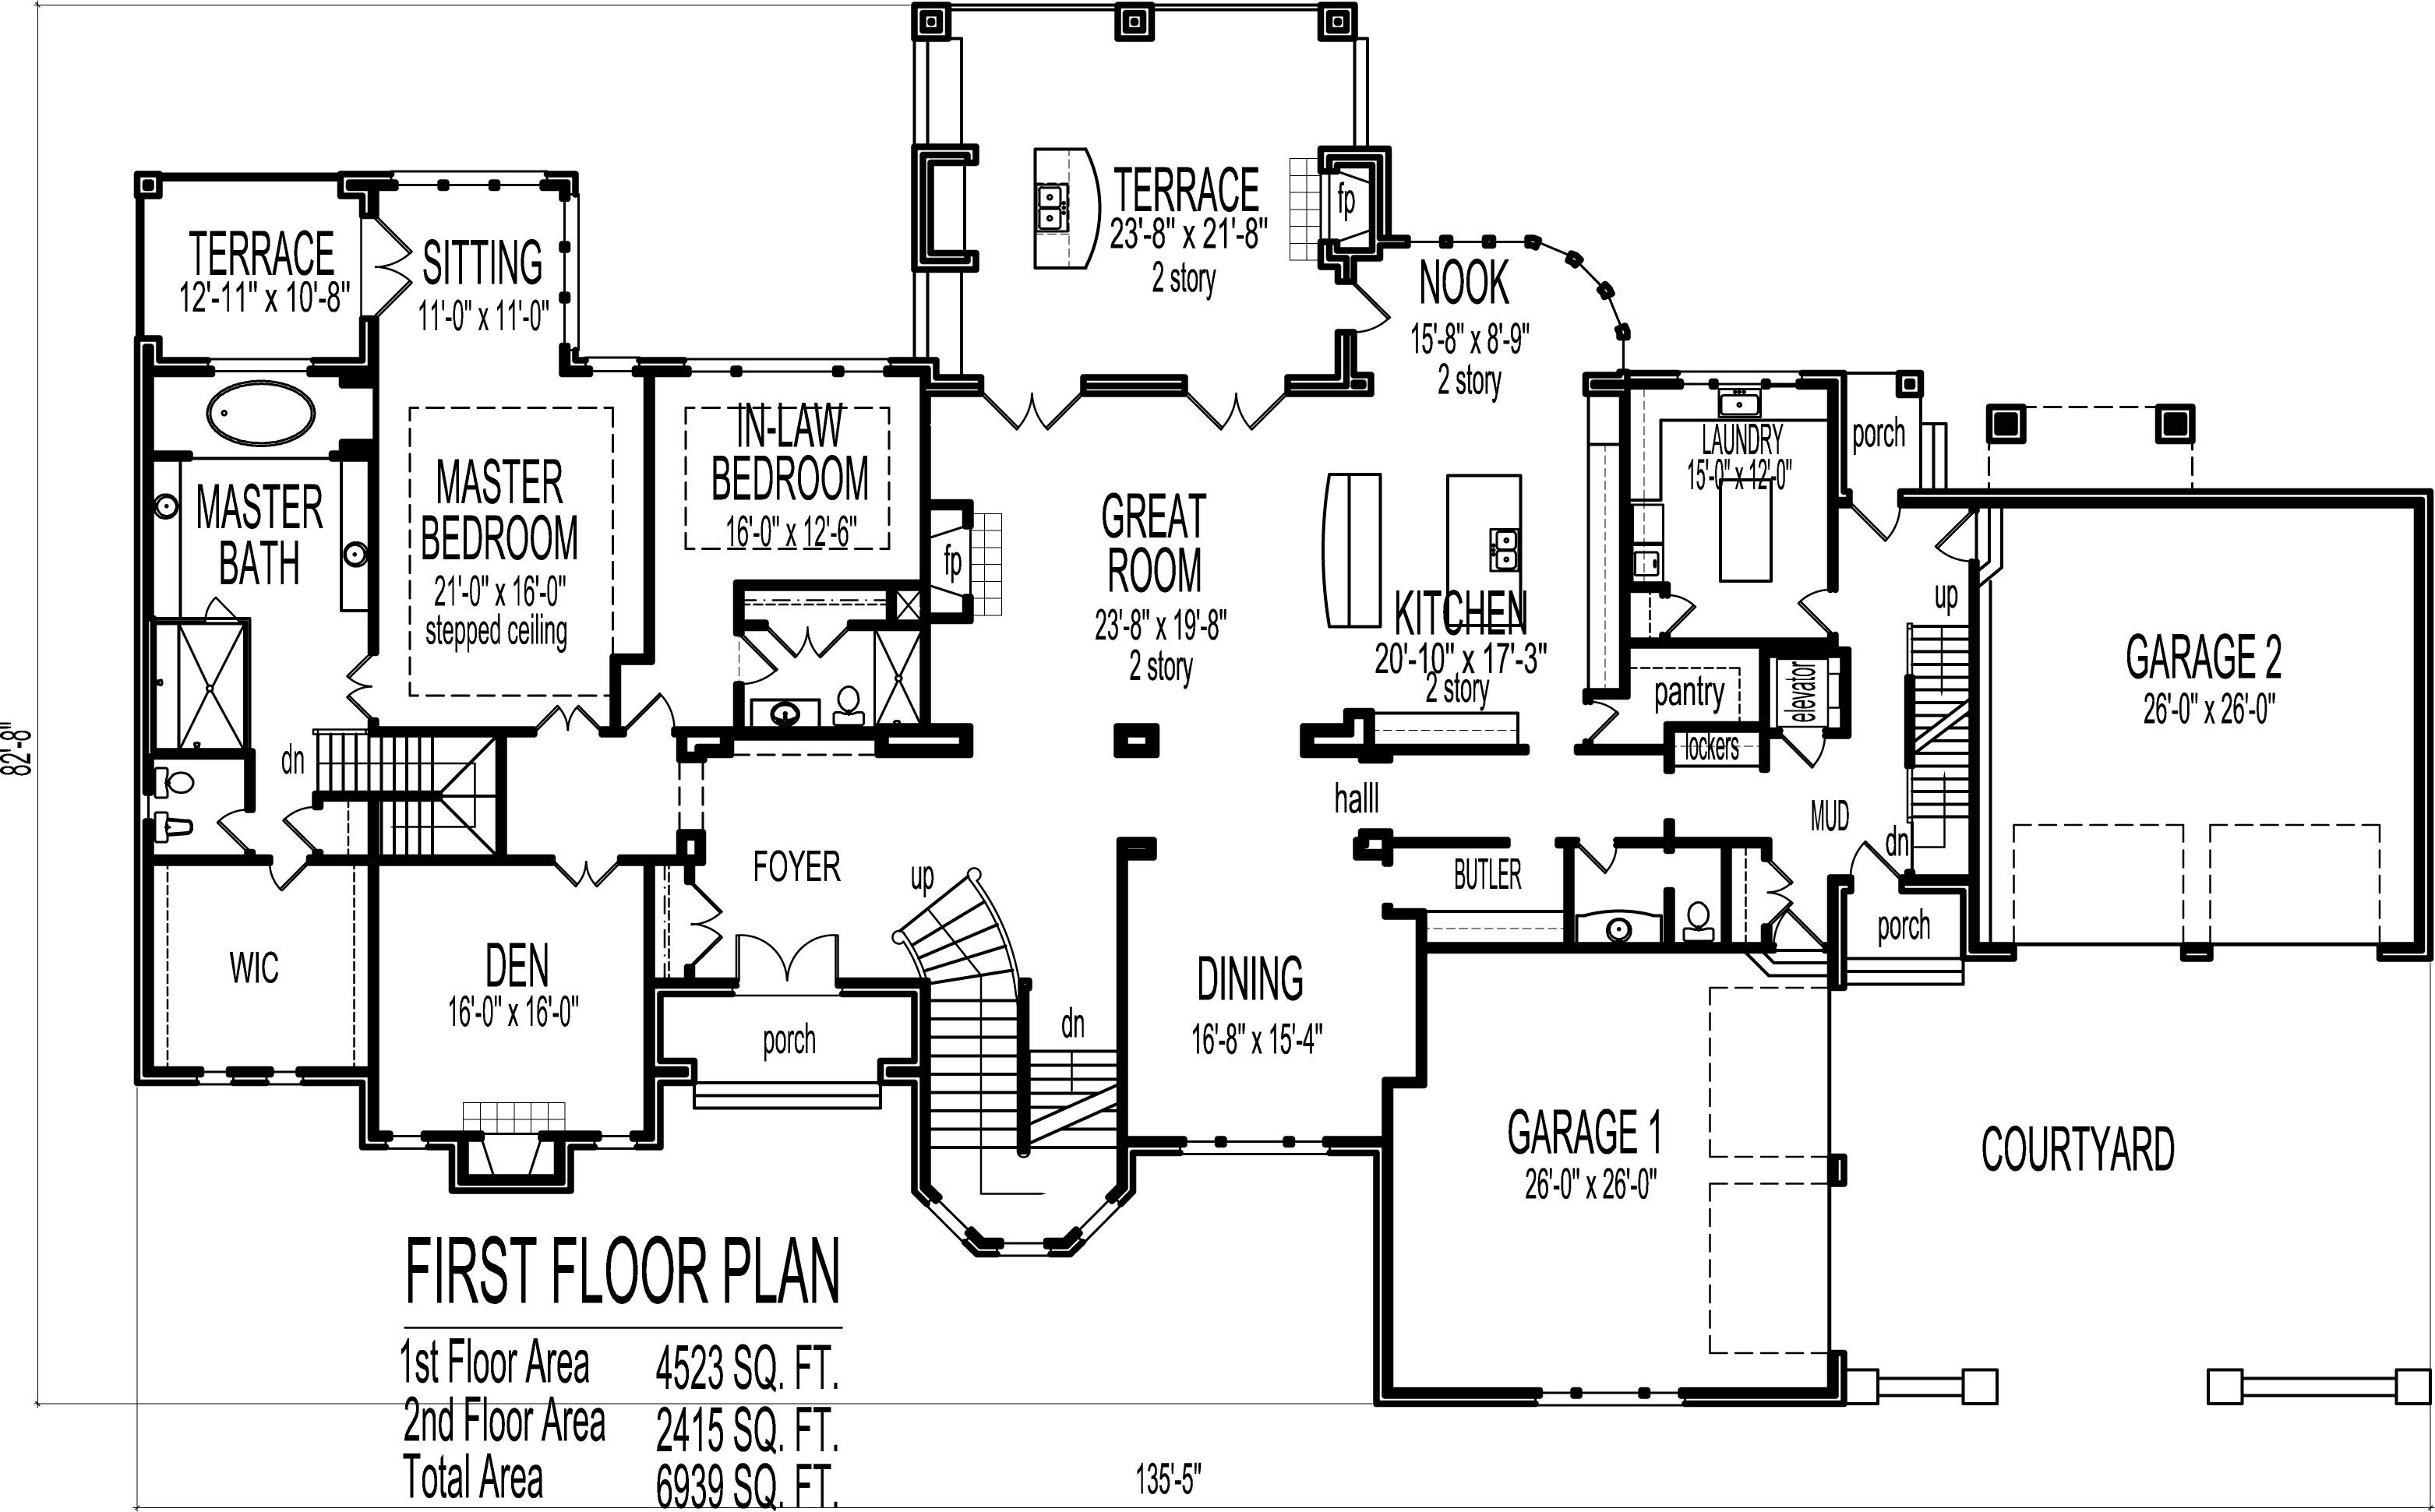 6 Bedroom 7 Bathroom Dream Home Plans Indianapolis Ft Wayne Evansville Indiana South Bend